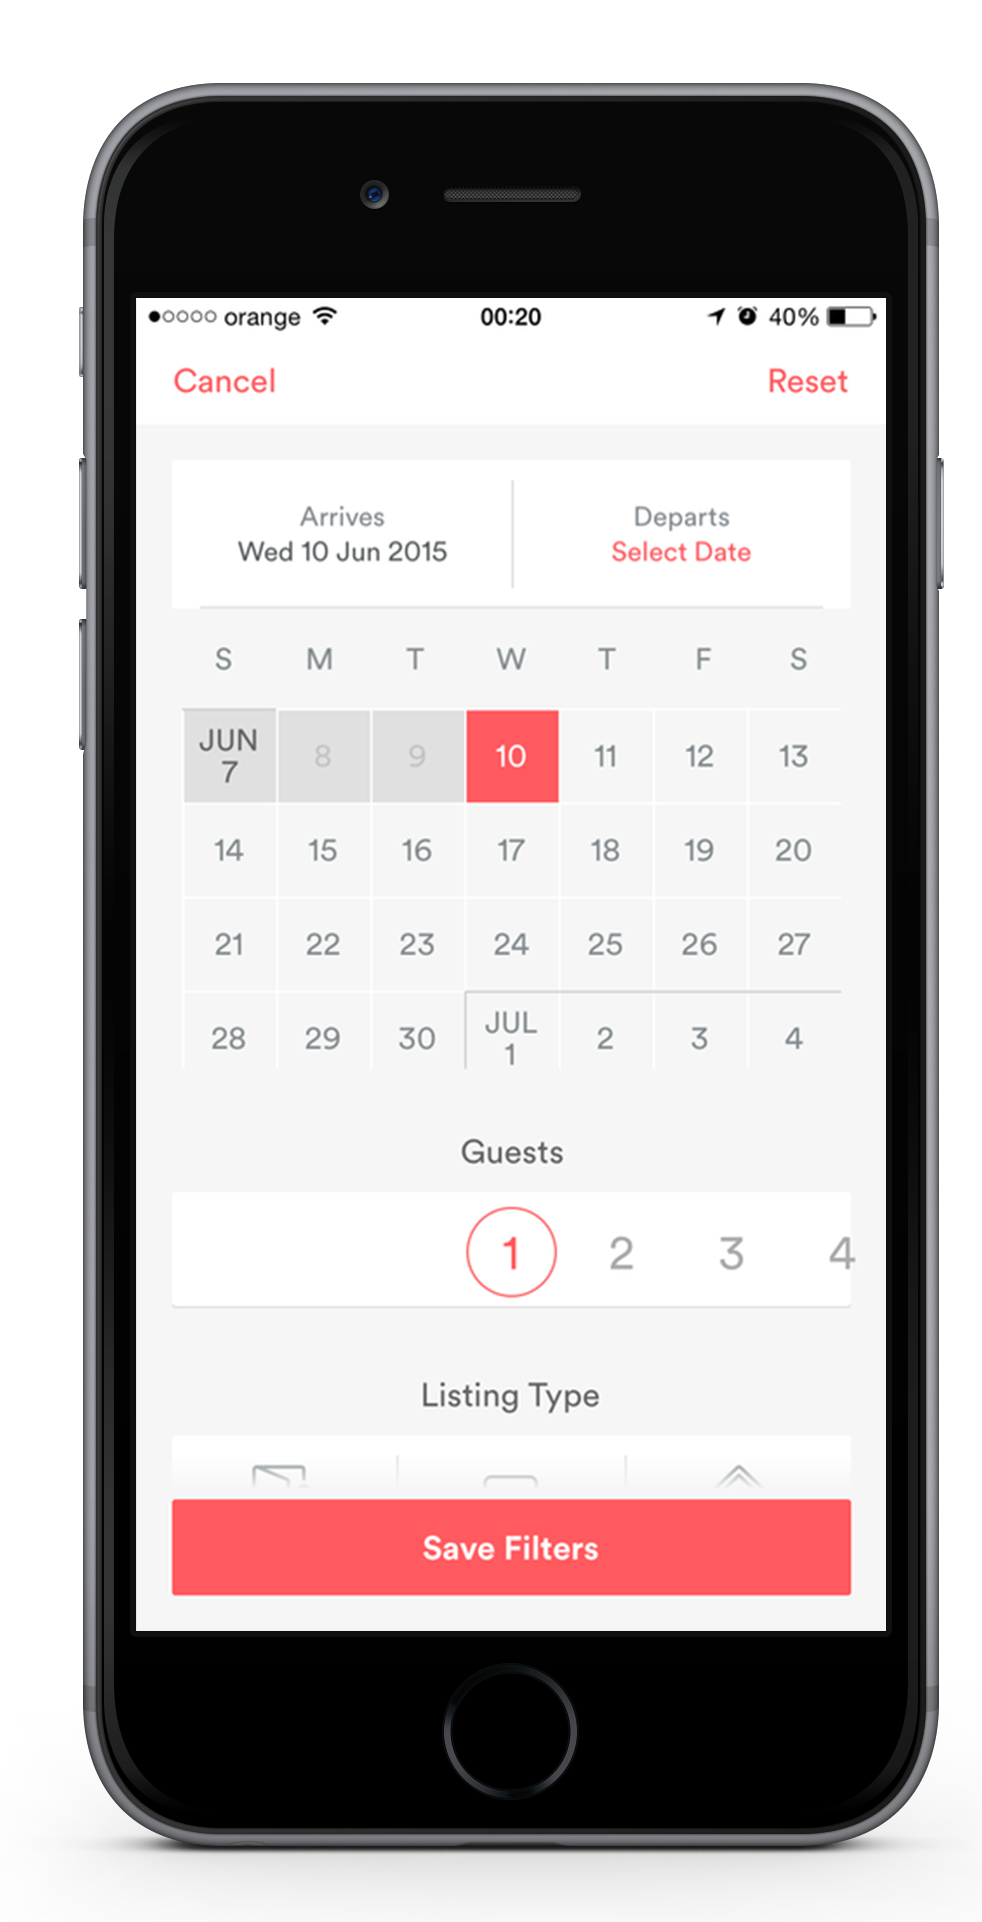 Calendar Booking Ui : How to build amazing booking apps calendar tips and